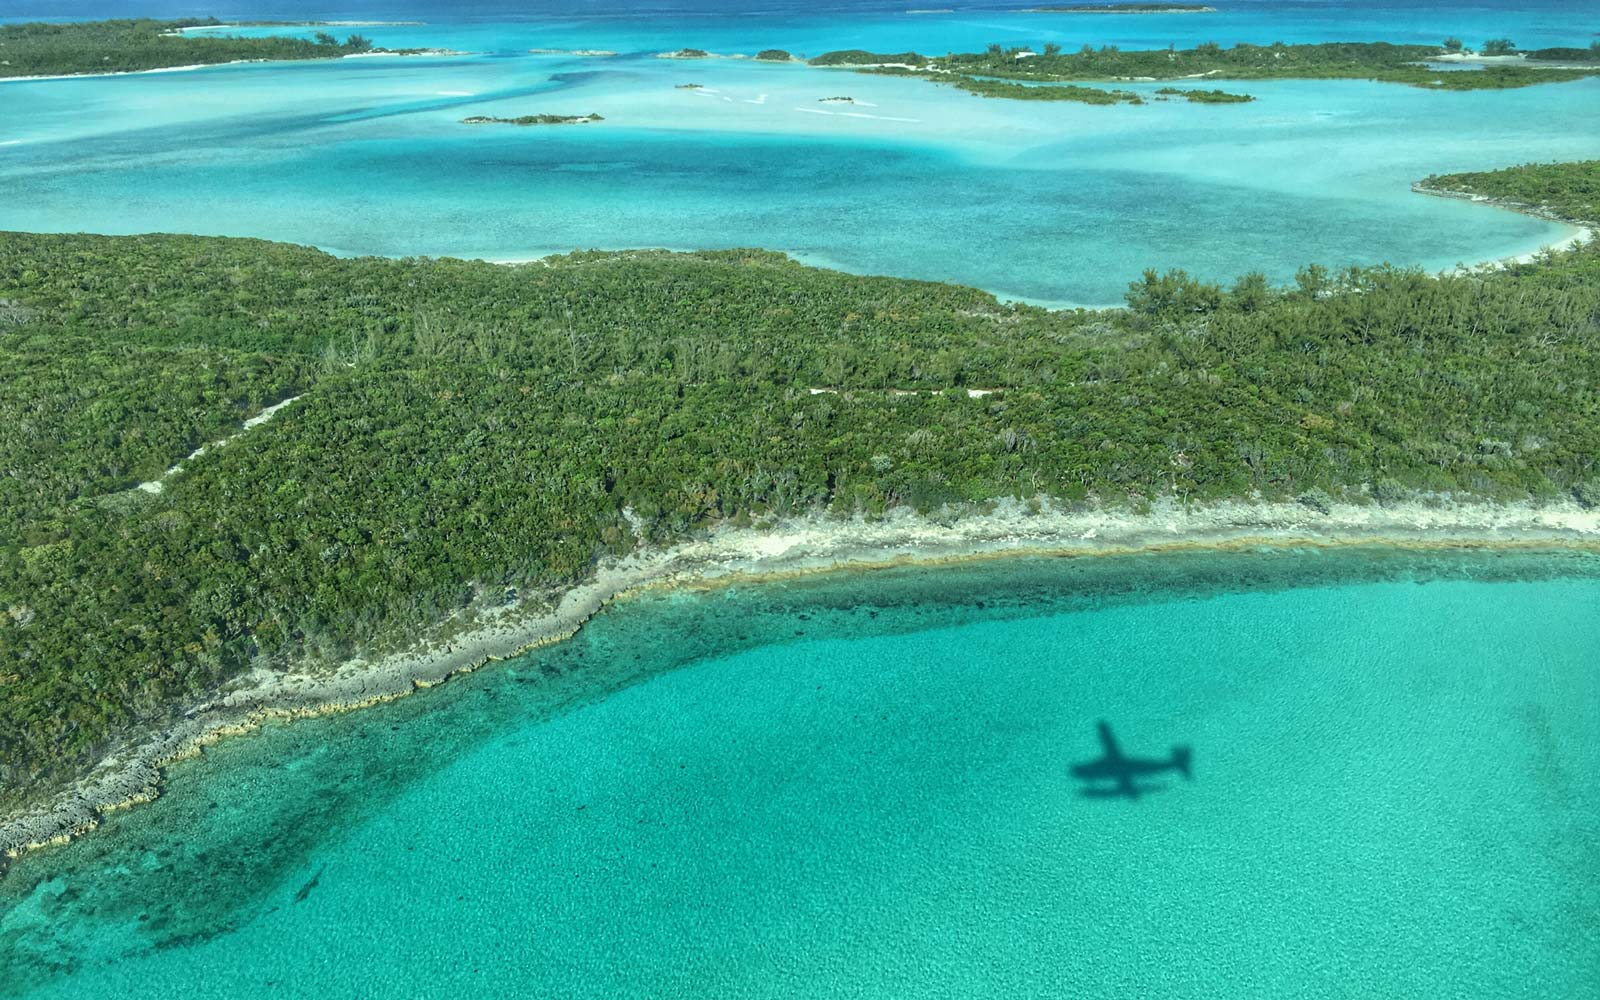 8 reasons to grab your swimsuit and head to the Bahamas